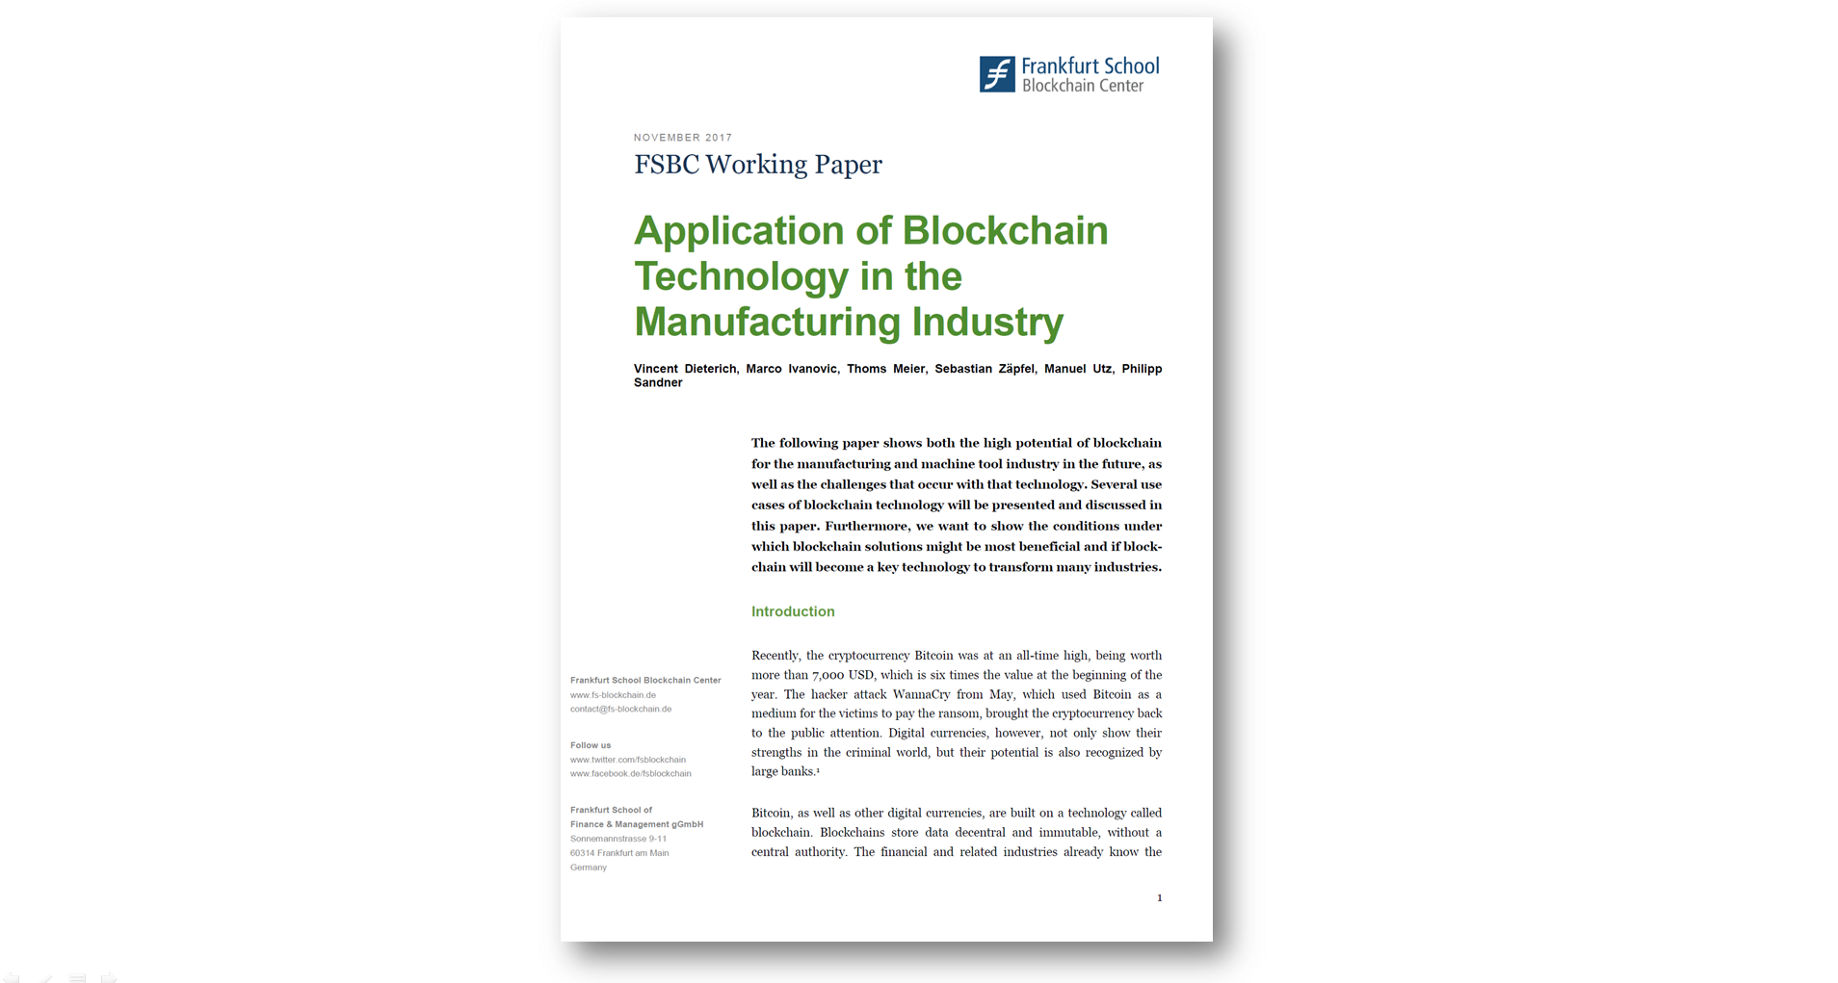 Application of Blockchain Technology in the Manufacturing Industry